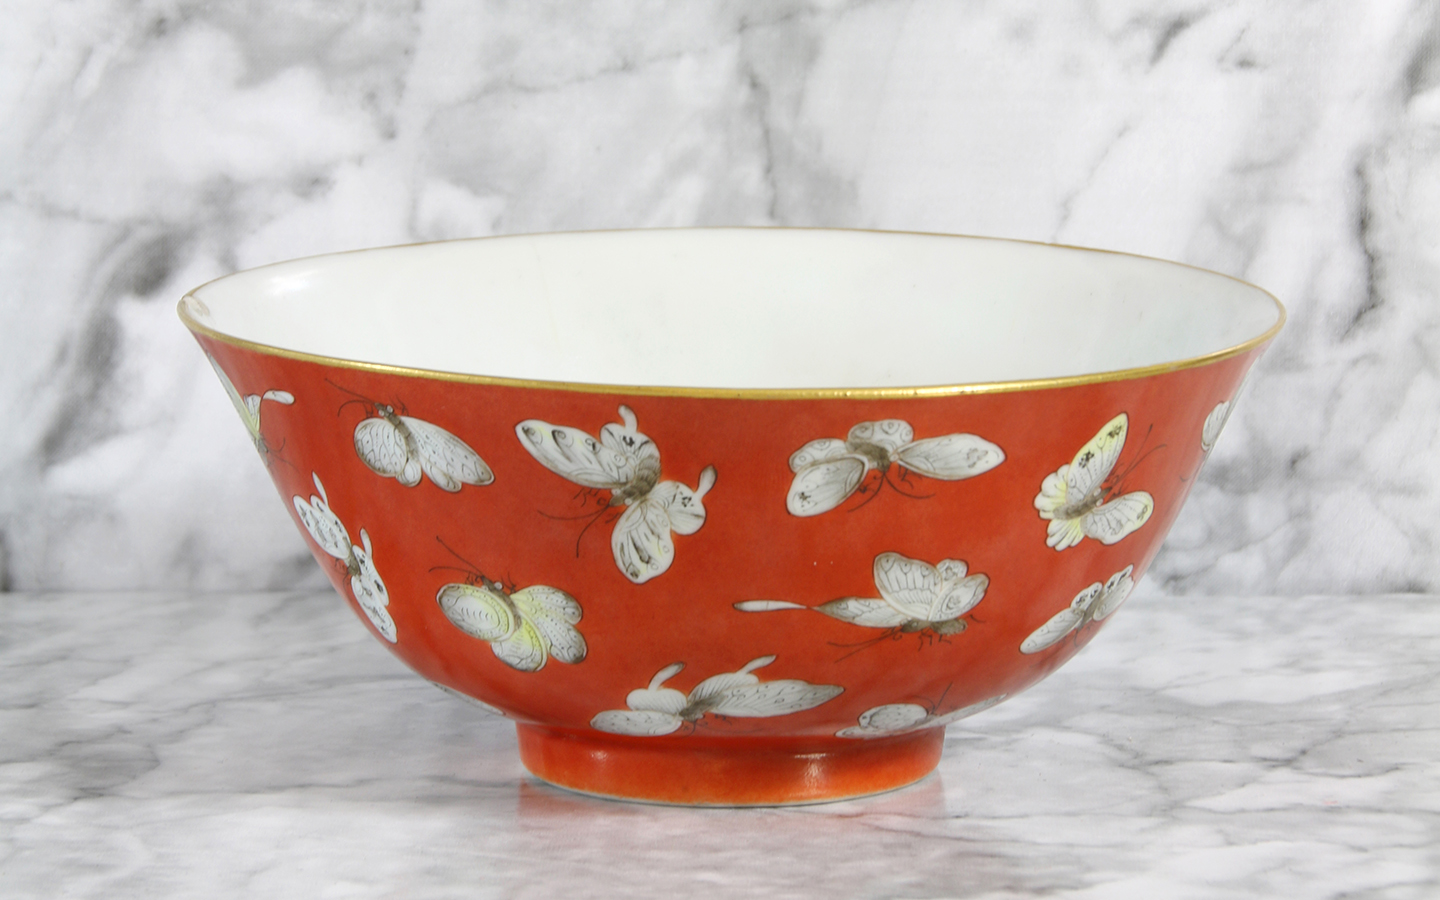 Finely potted, the rounded sides with slightly everted rim, painted with various butterflies, all reserved on a rich coral-red ground, the interior glazed white, the base with a four-character mark Shende Tang zhi ('Made for the Hall of Prudent Virtue') in iron red,